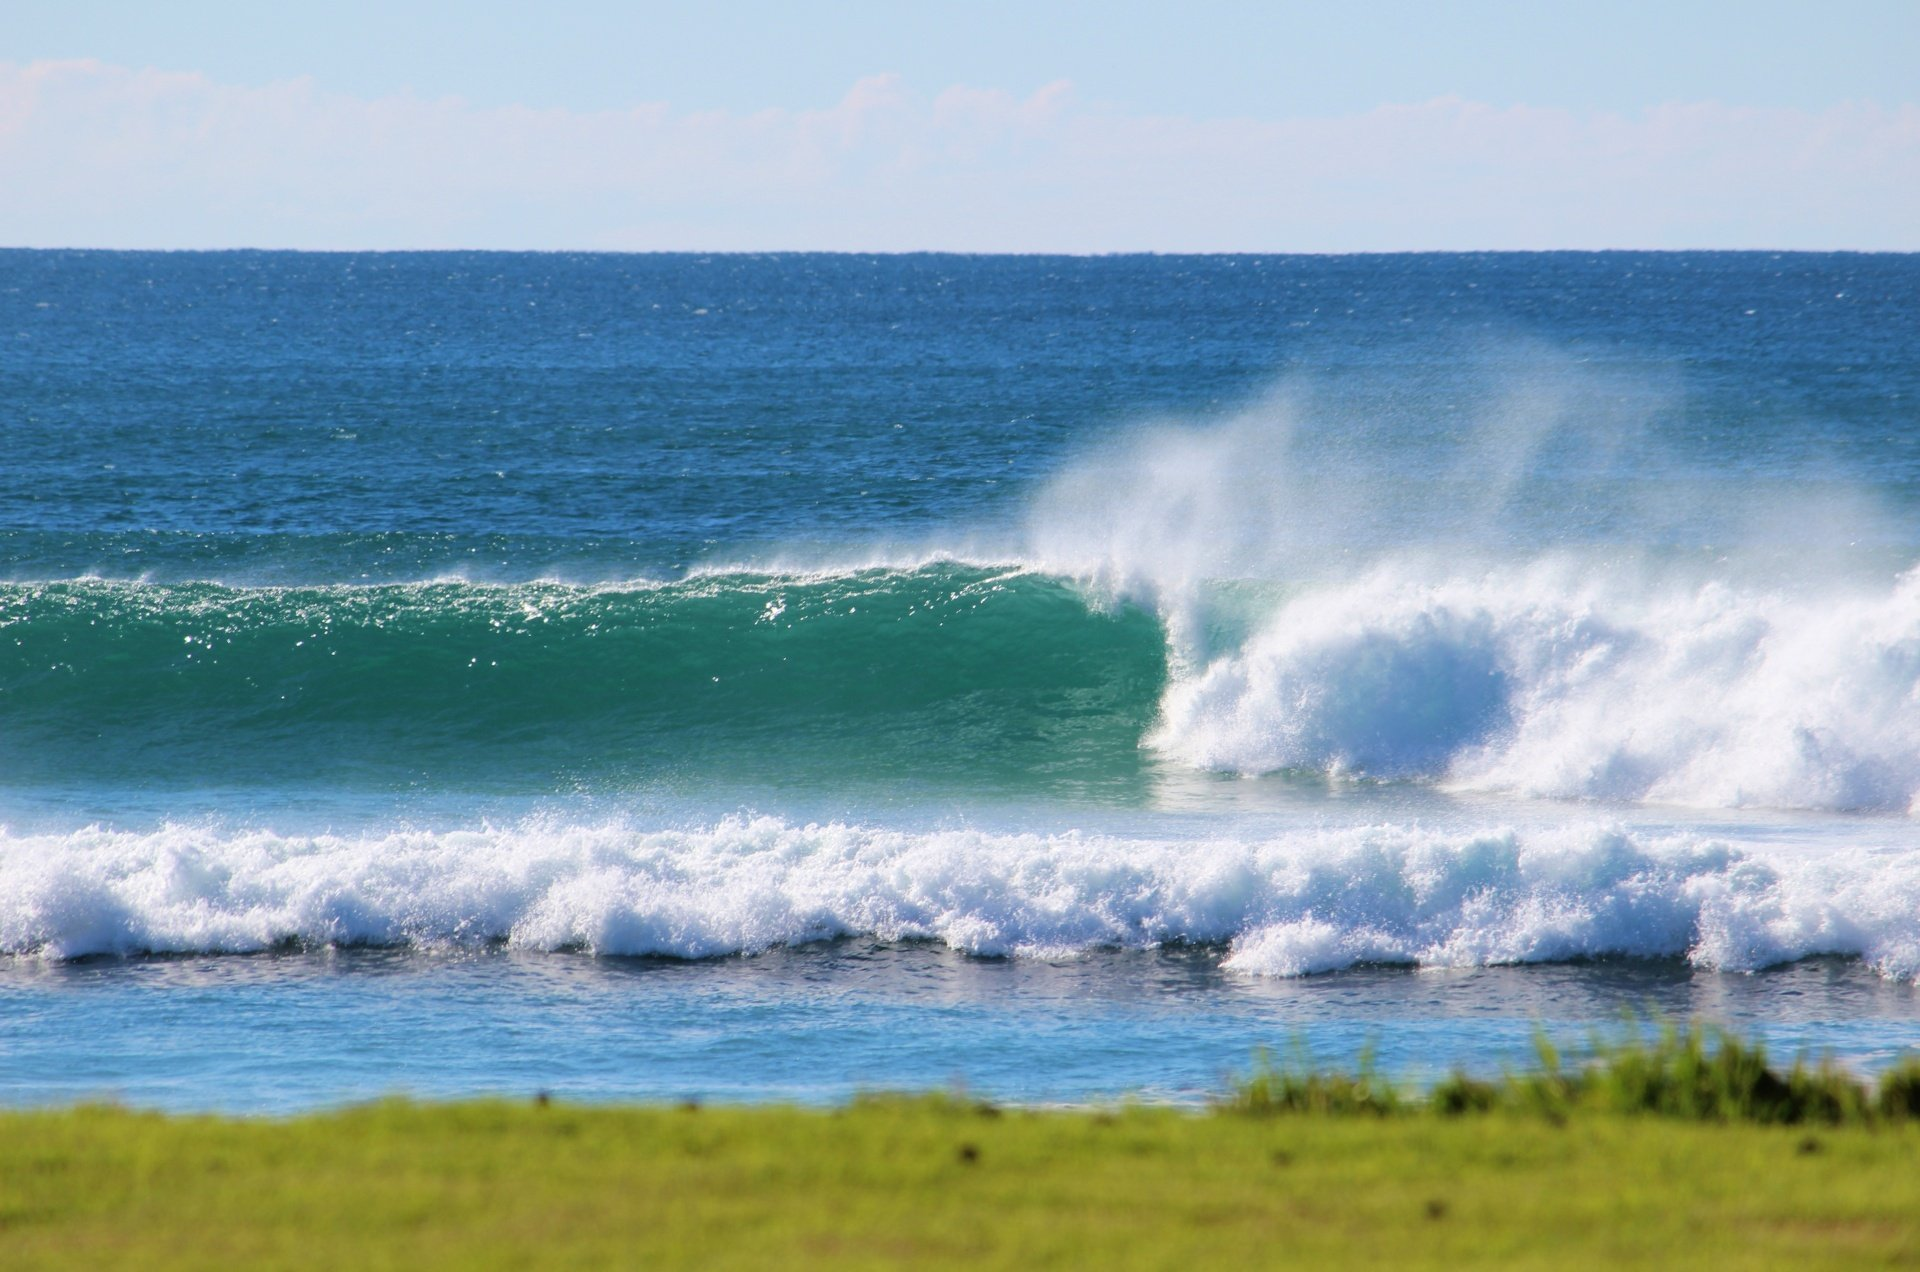 chris zinon's photo of Lennox Head